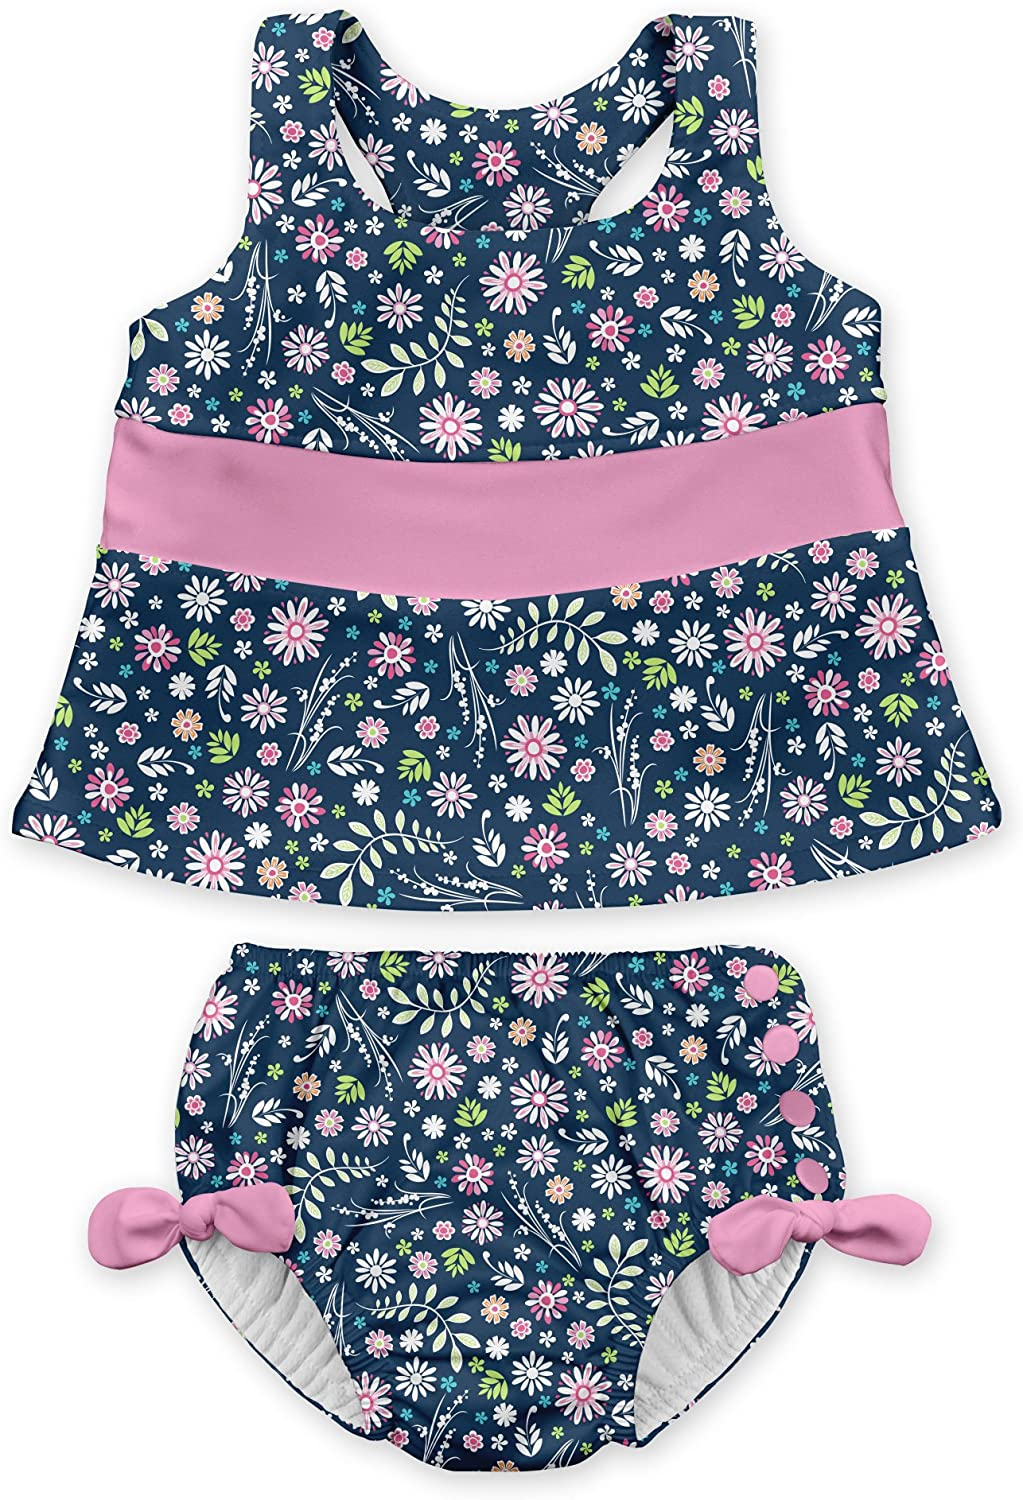 Patented Design i play Lightweight Baby Girl Swimsuit by green sprouts Two Piece Tankini with Snap Reusable Swim Diaper